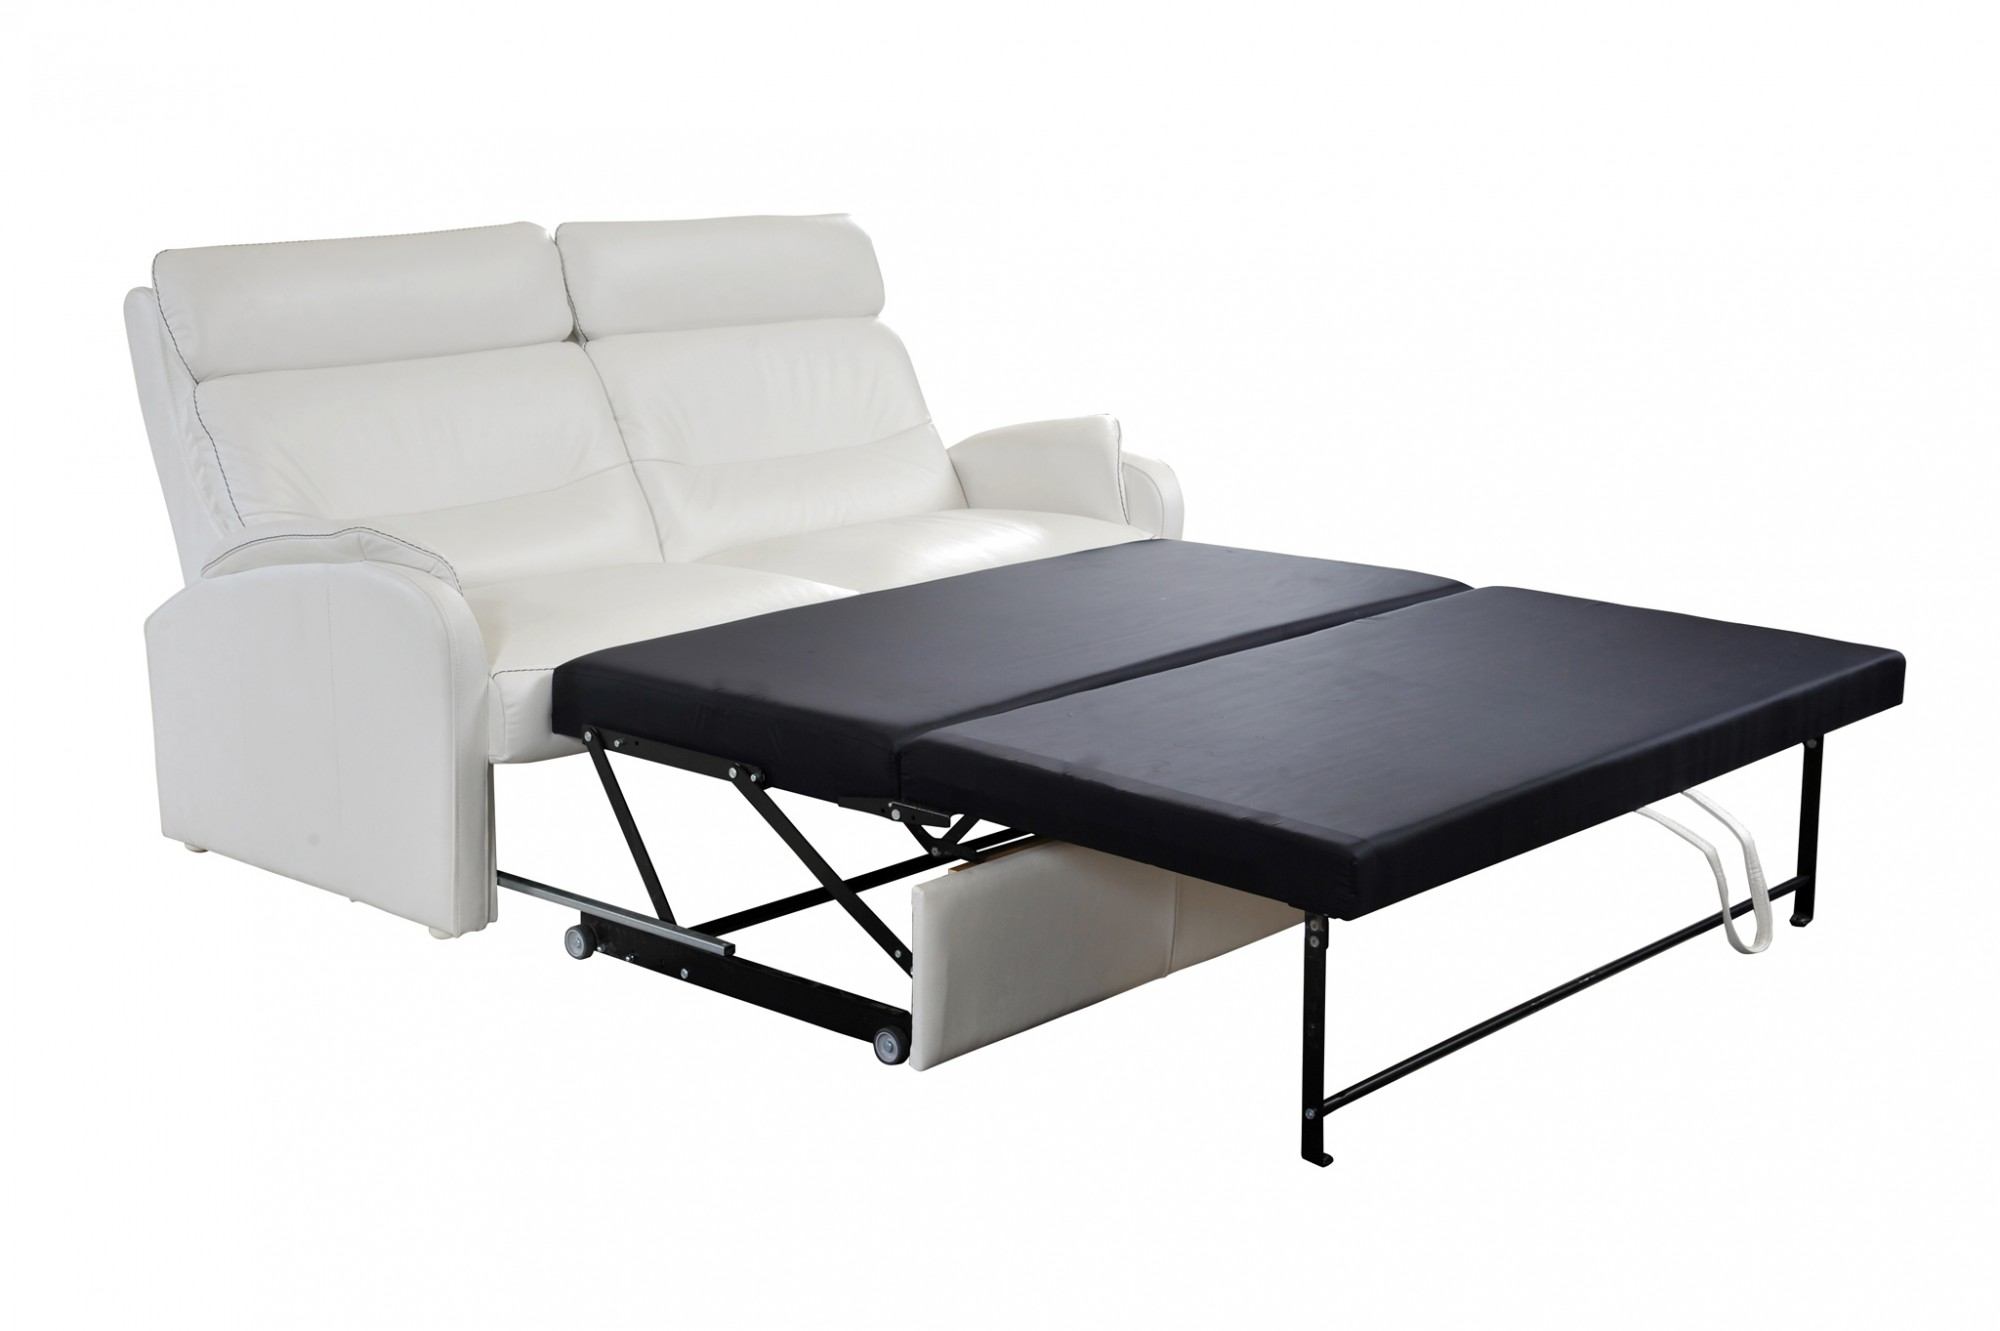 2 seater sofa bed and chair chairs seating for Sofa bed 2 seater